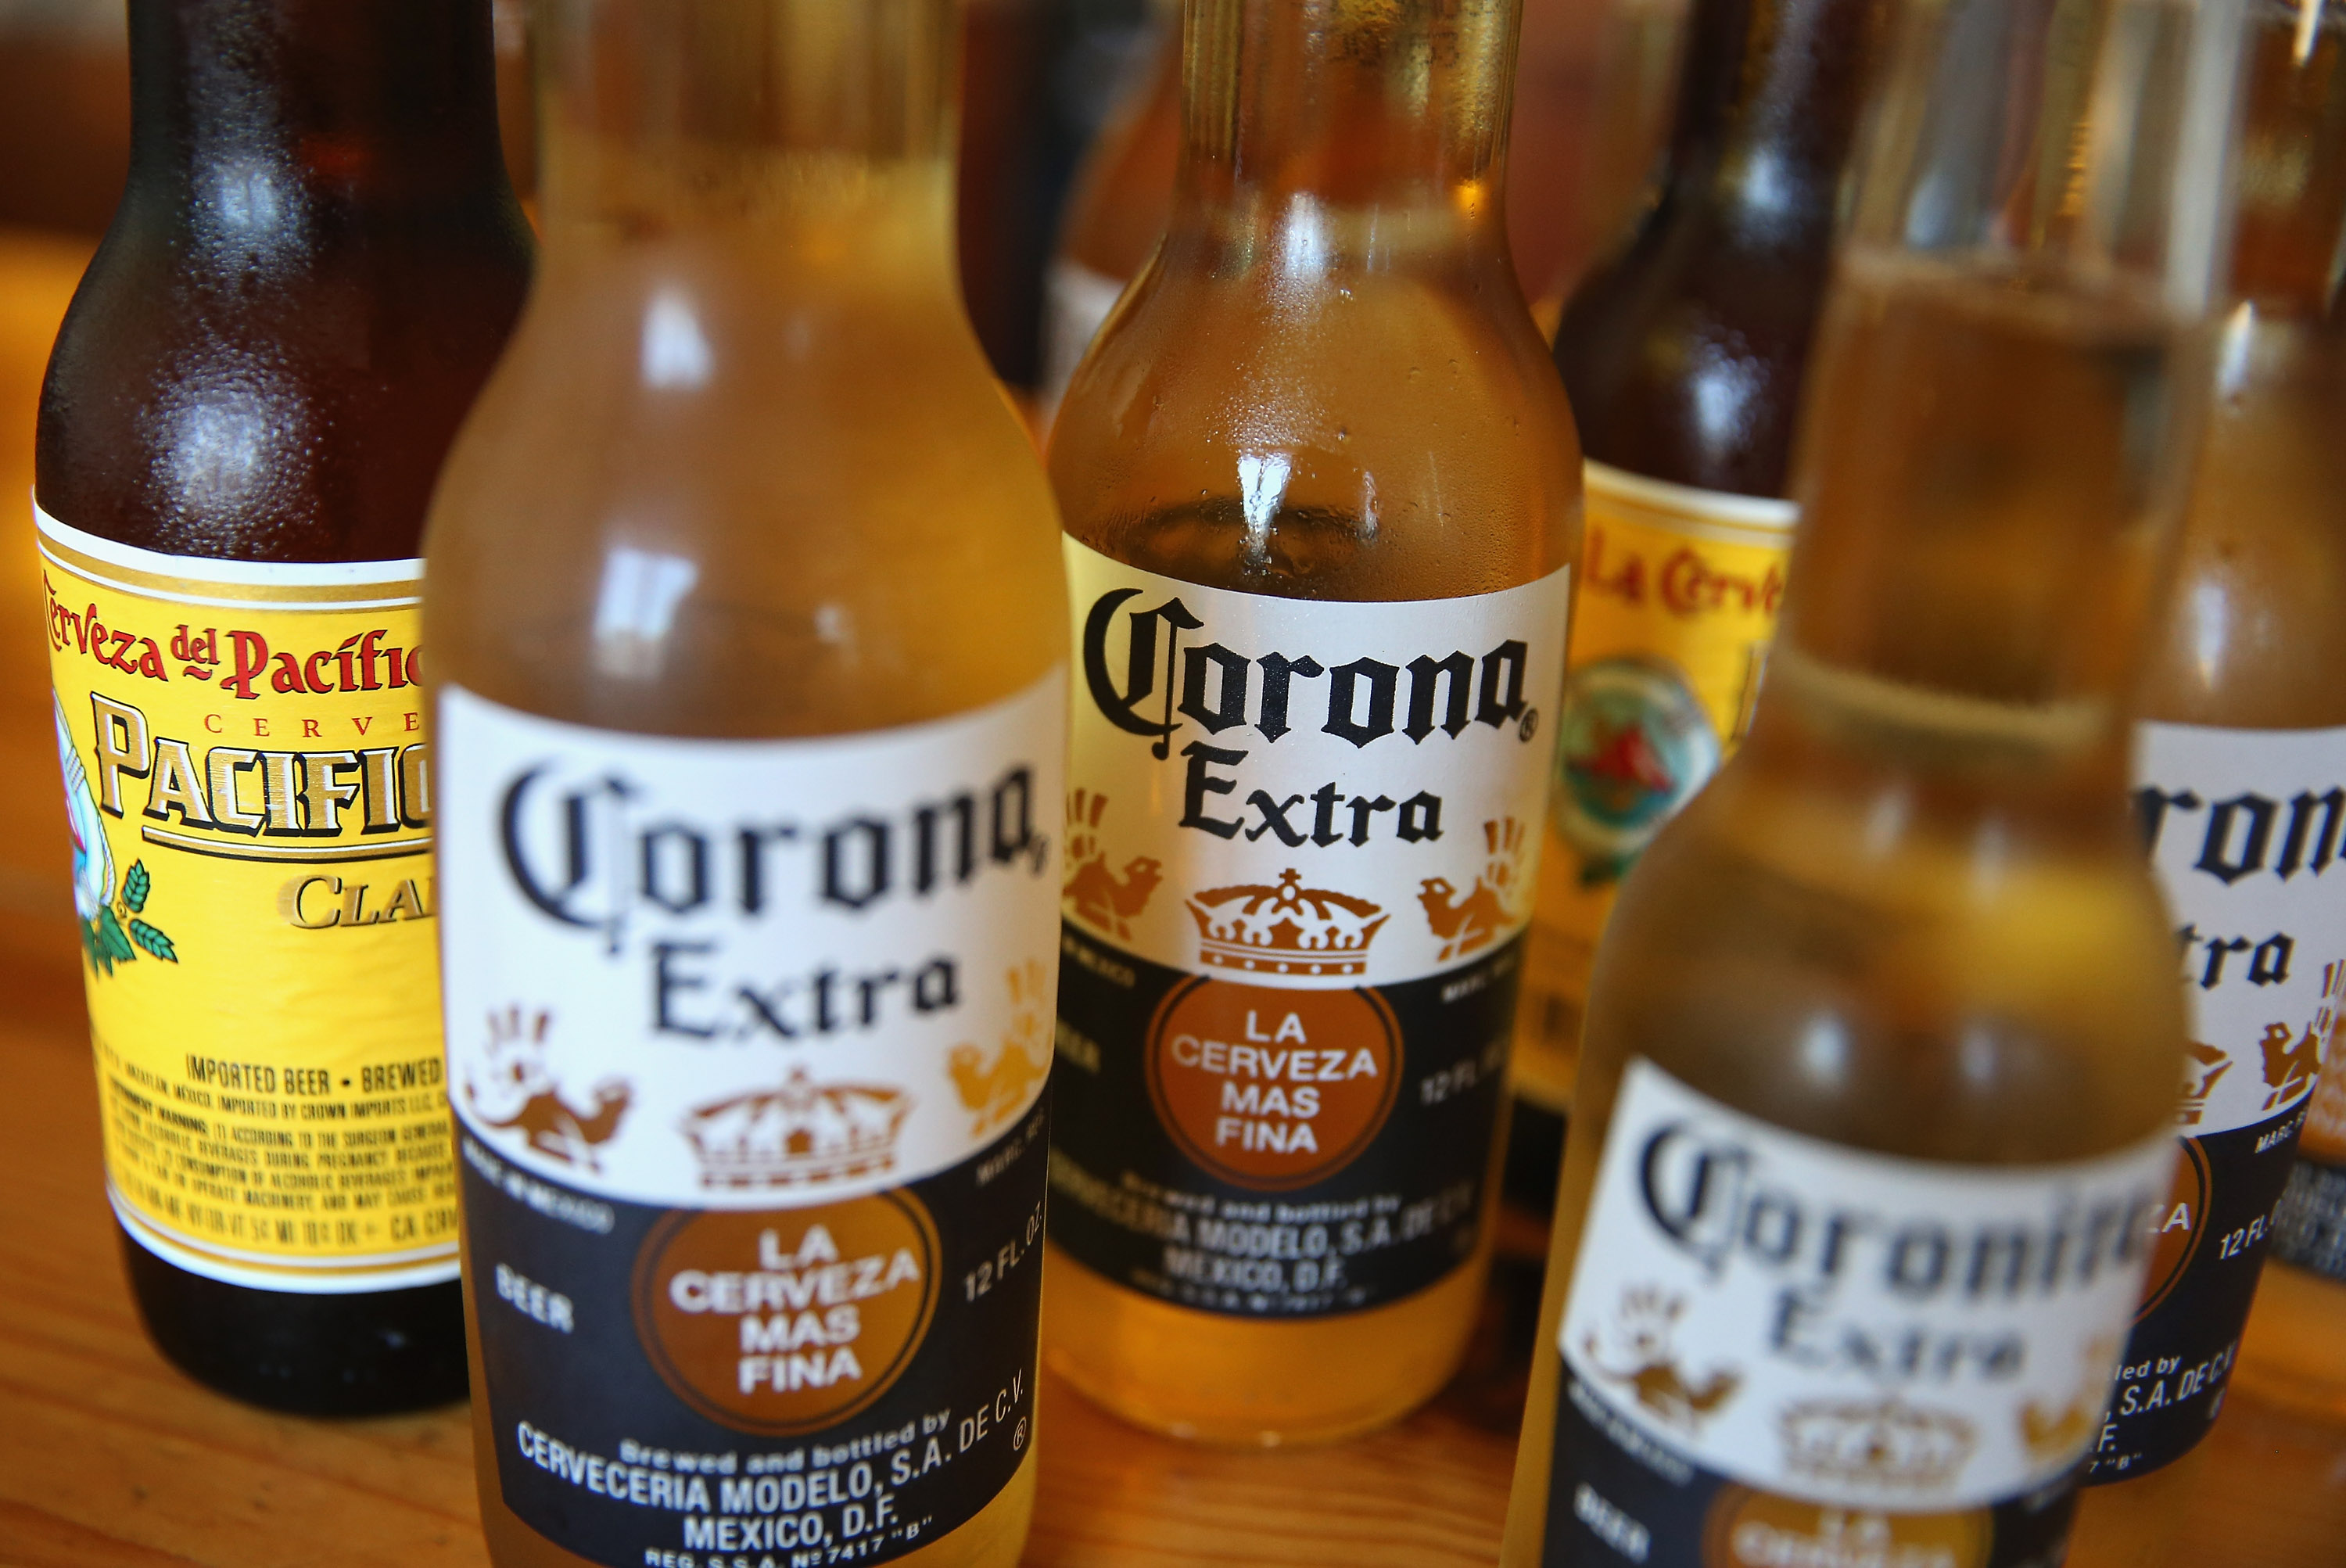 wine-conglomerate-constellation-brands-buys-corona-from-anheuser-busch-inbev.jpg